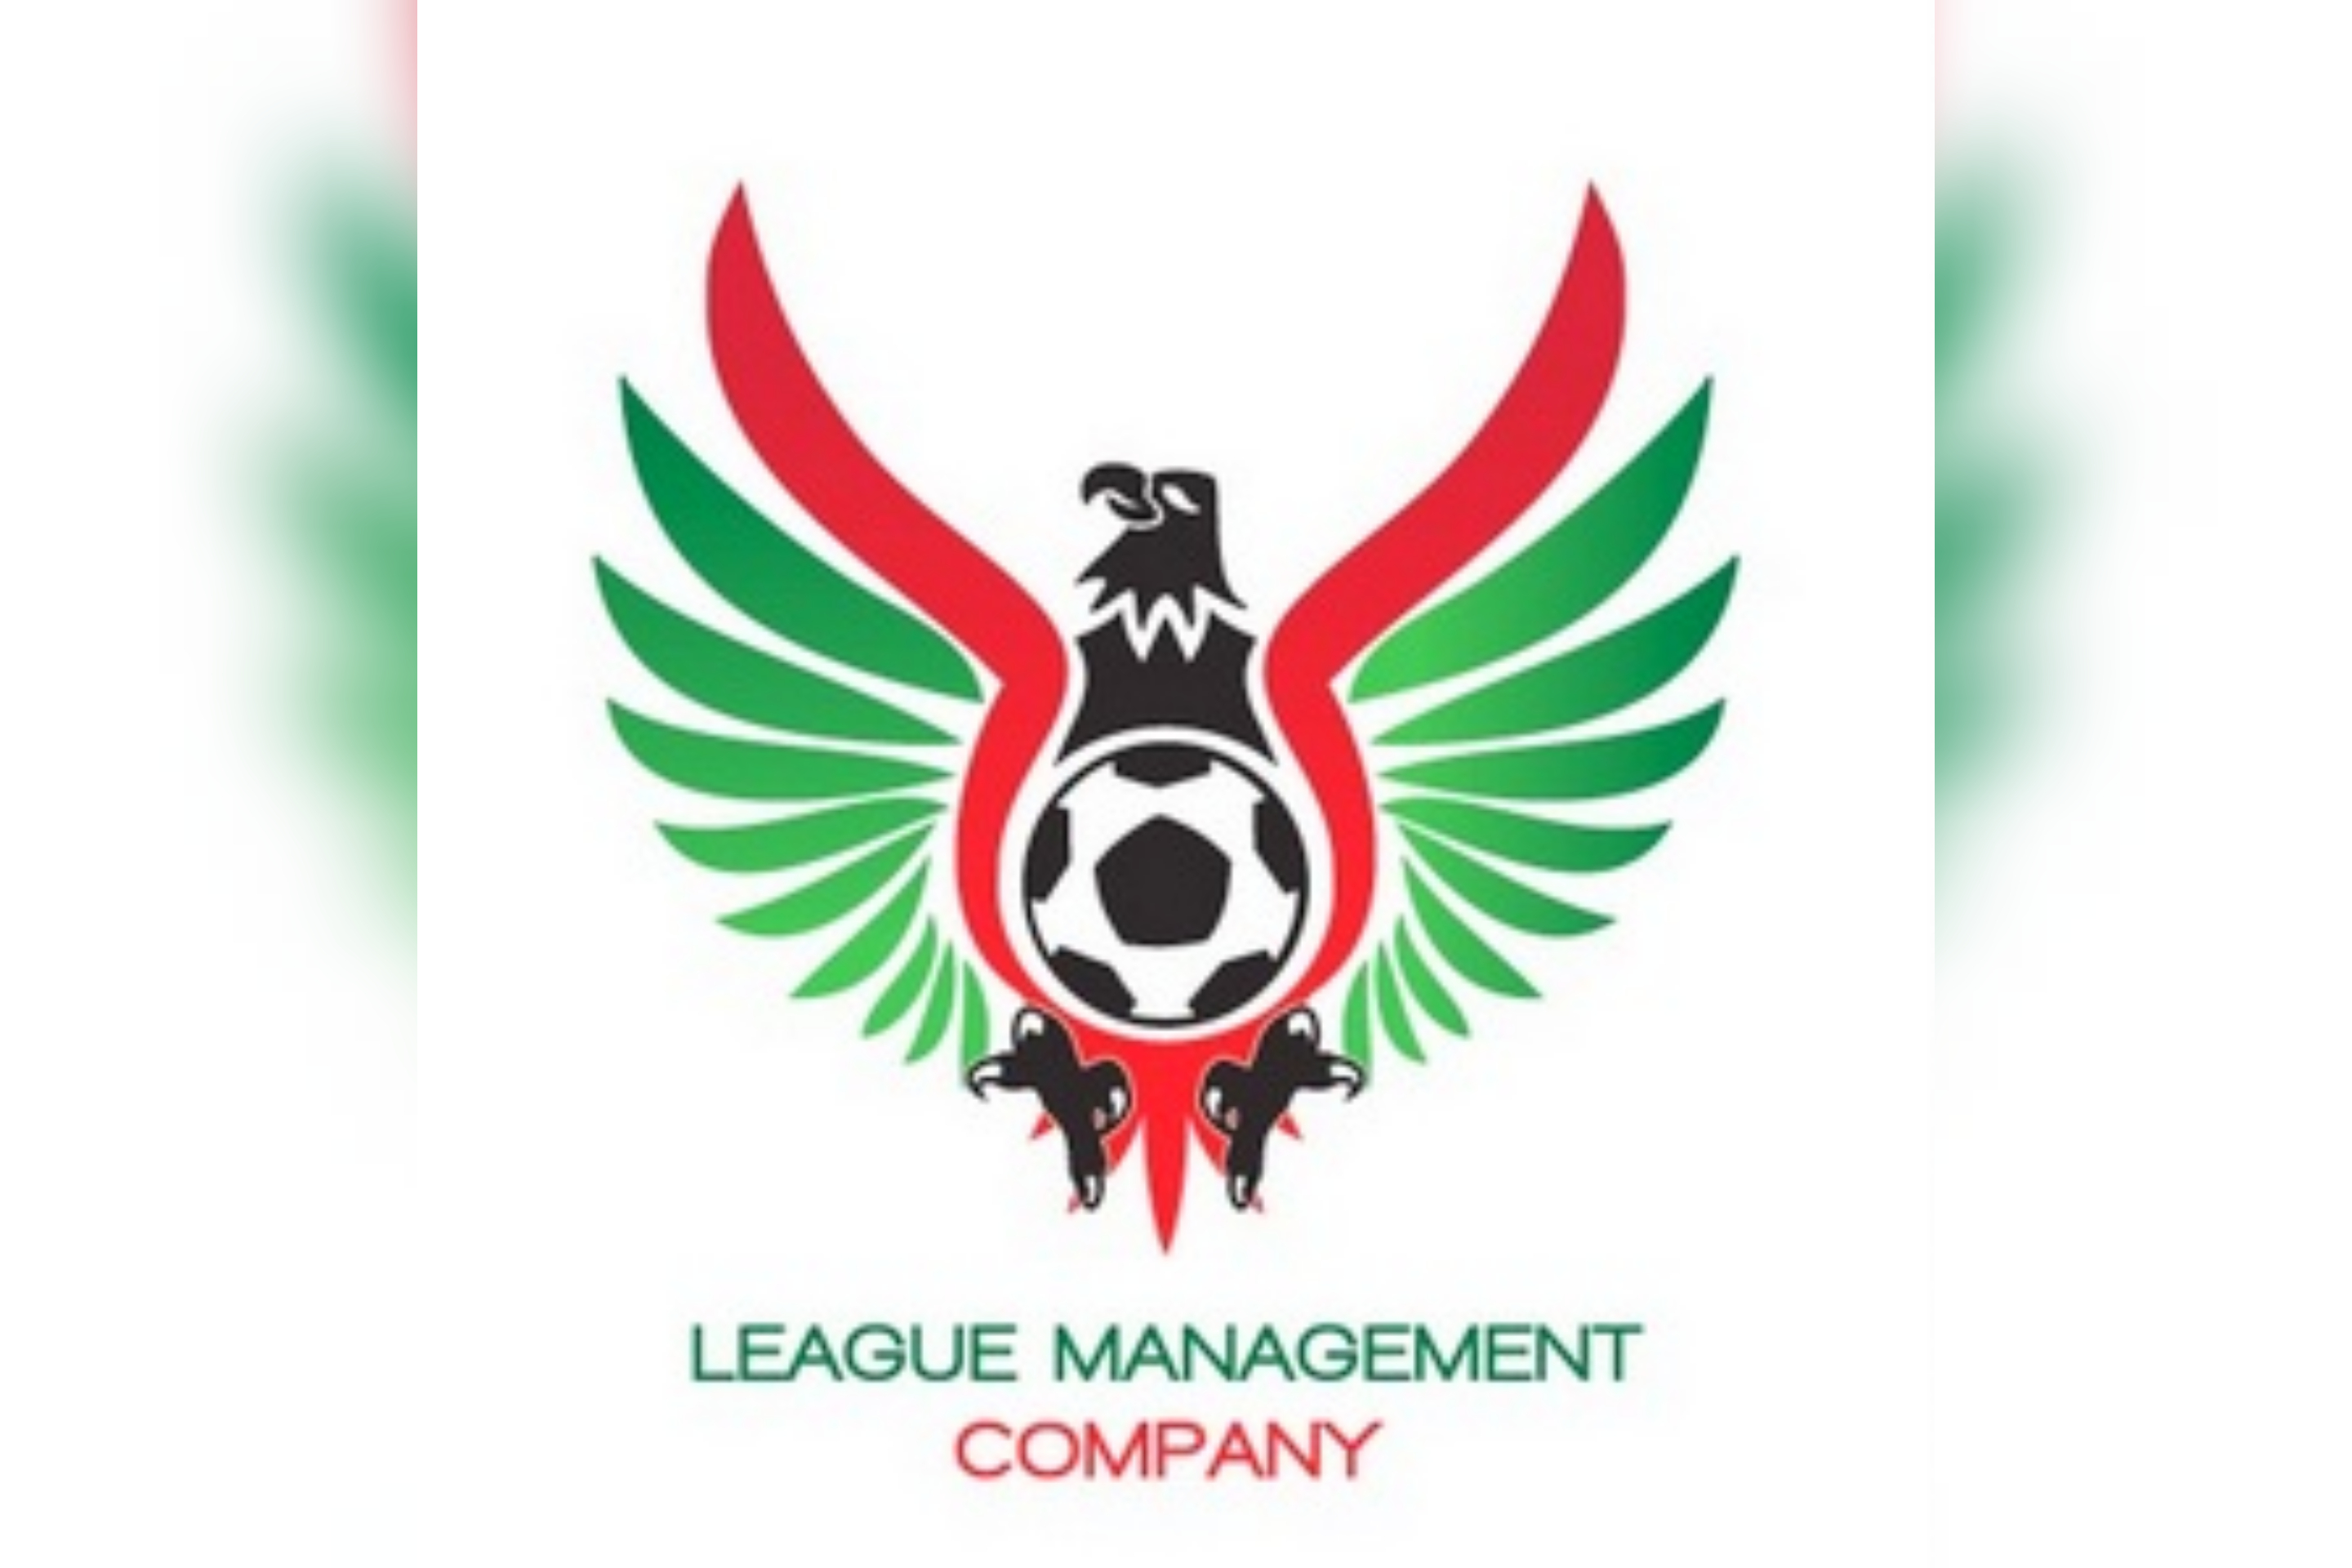 LMC Delay 3SC's Relegation, Order Disrupted Gombe Vs Wikki Replayed